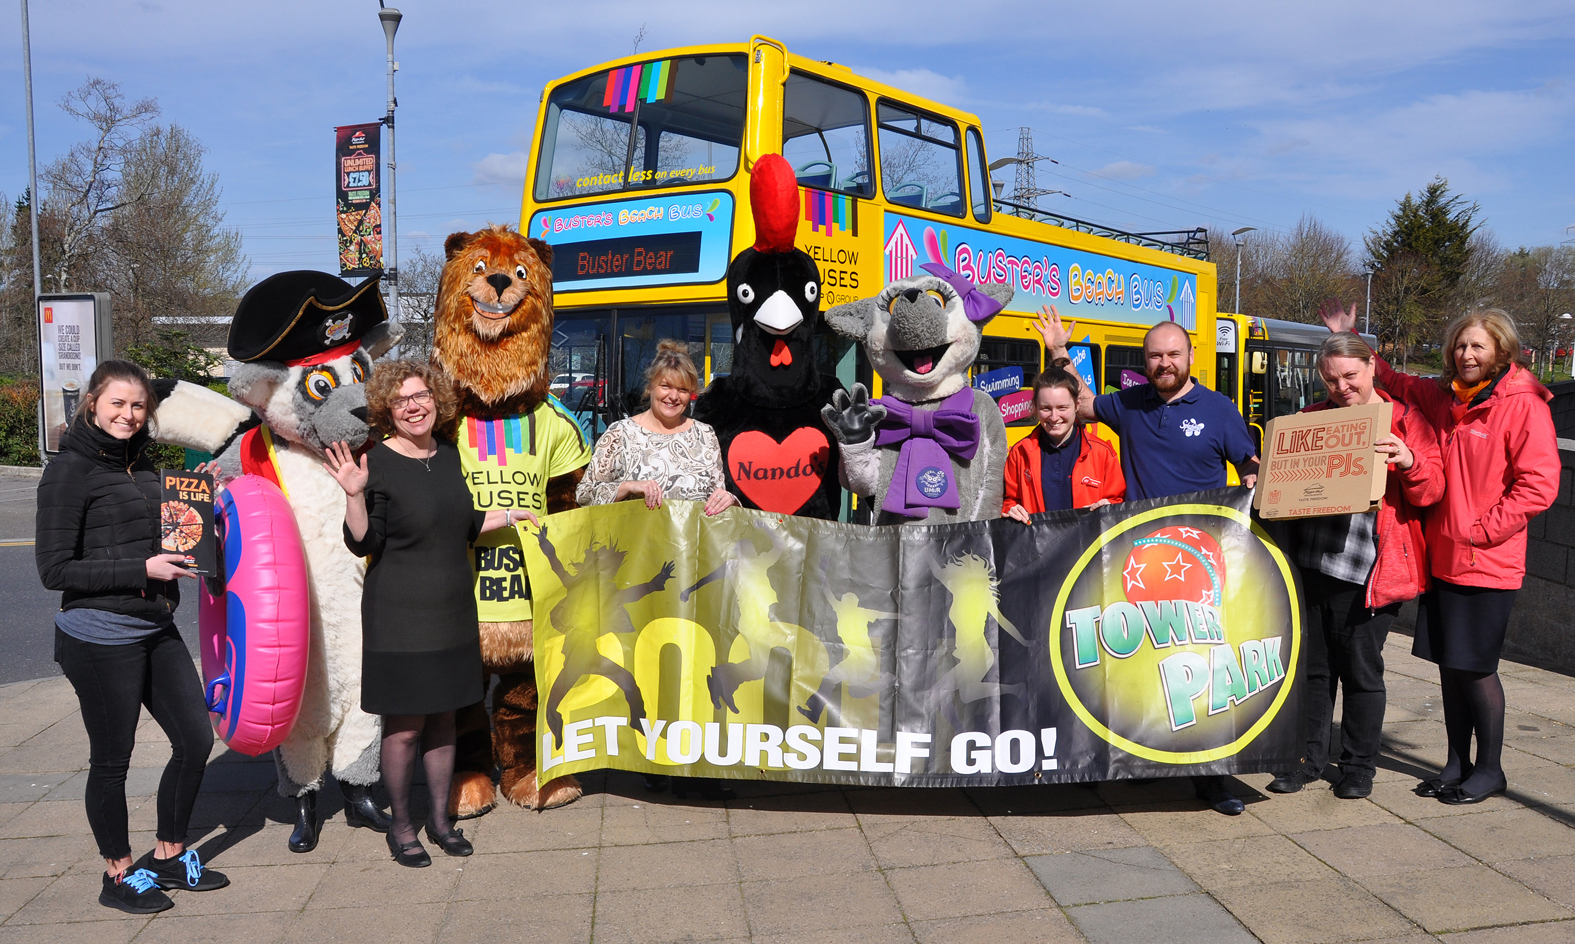 Local News New Bus Route Between Bournemouth And Tower Park